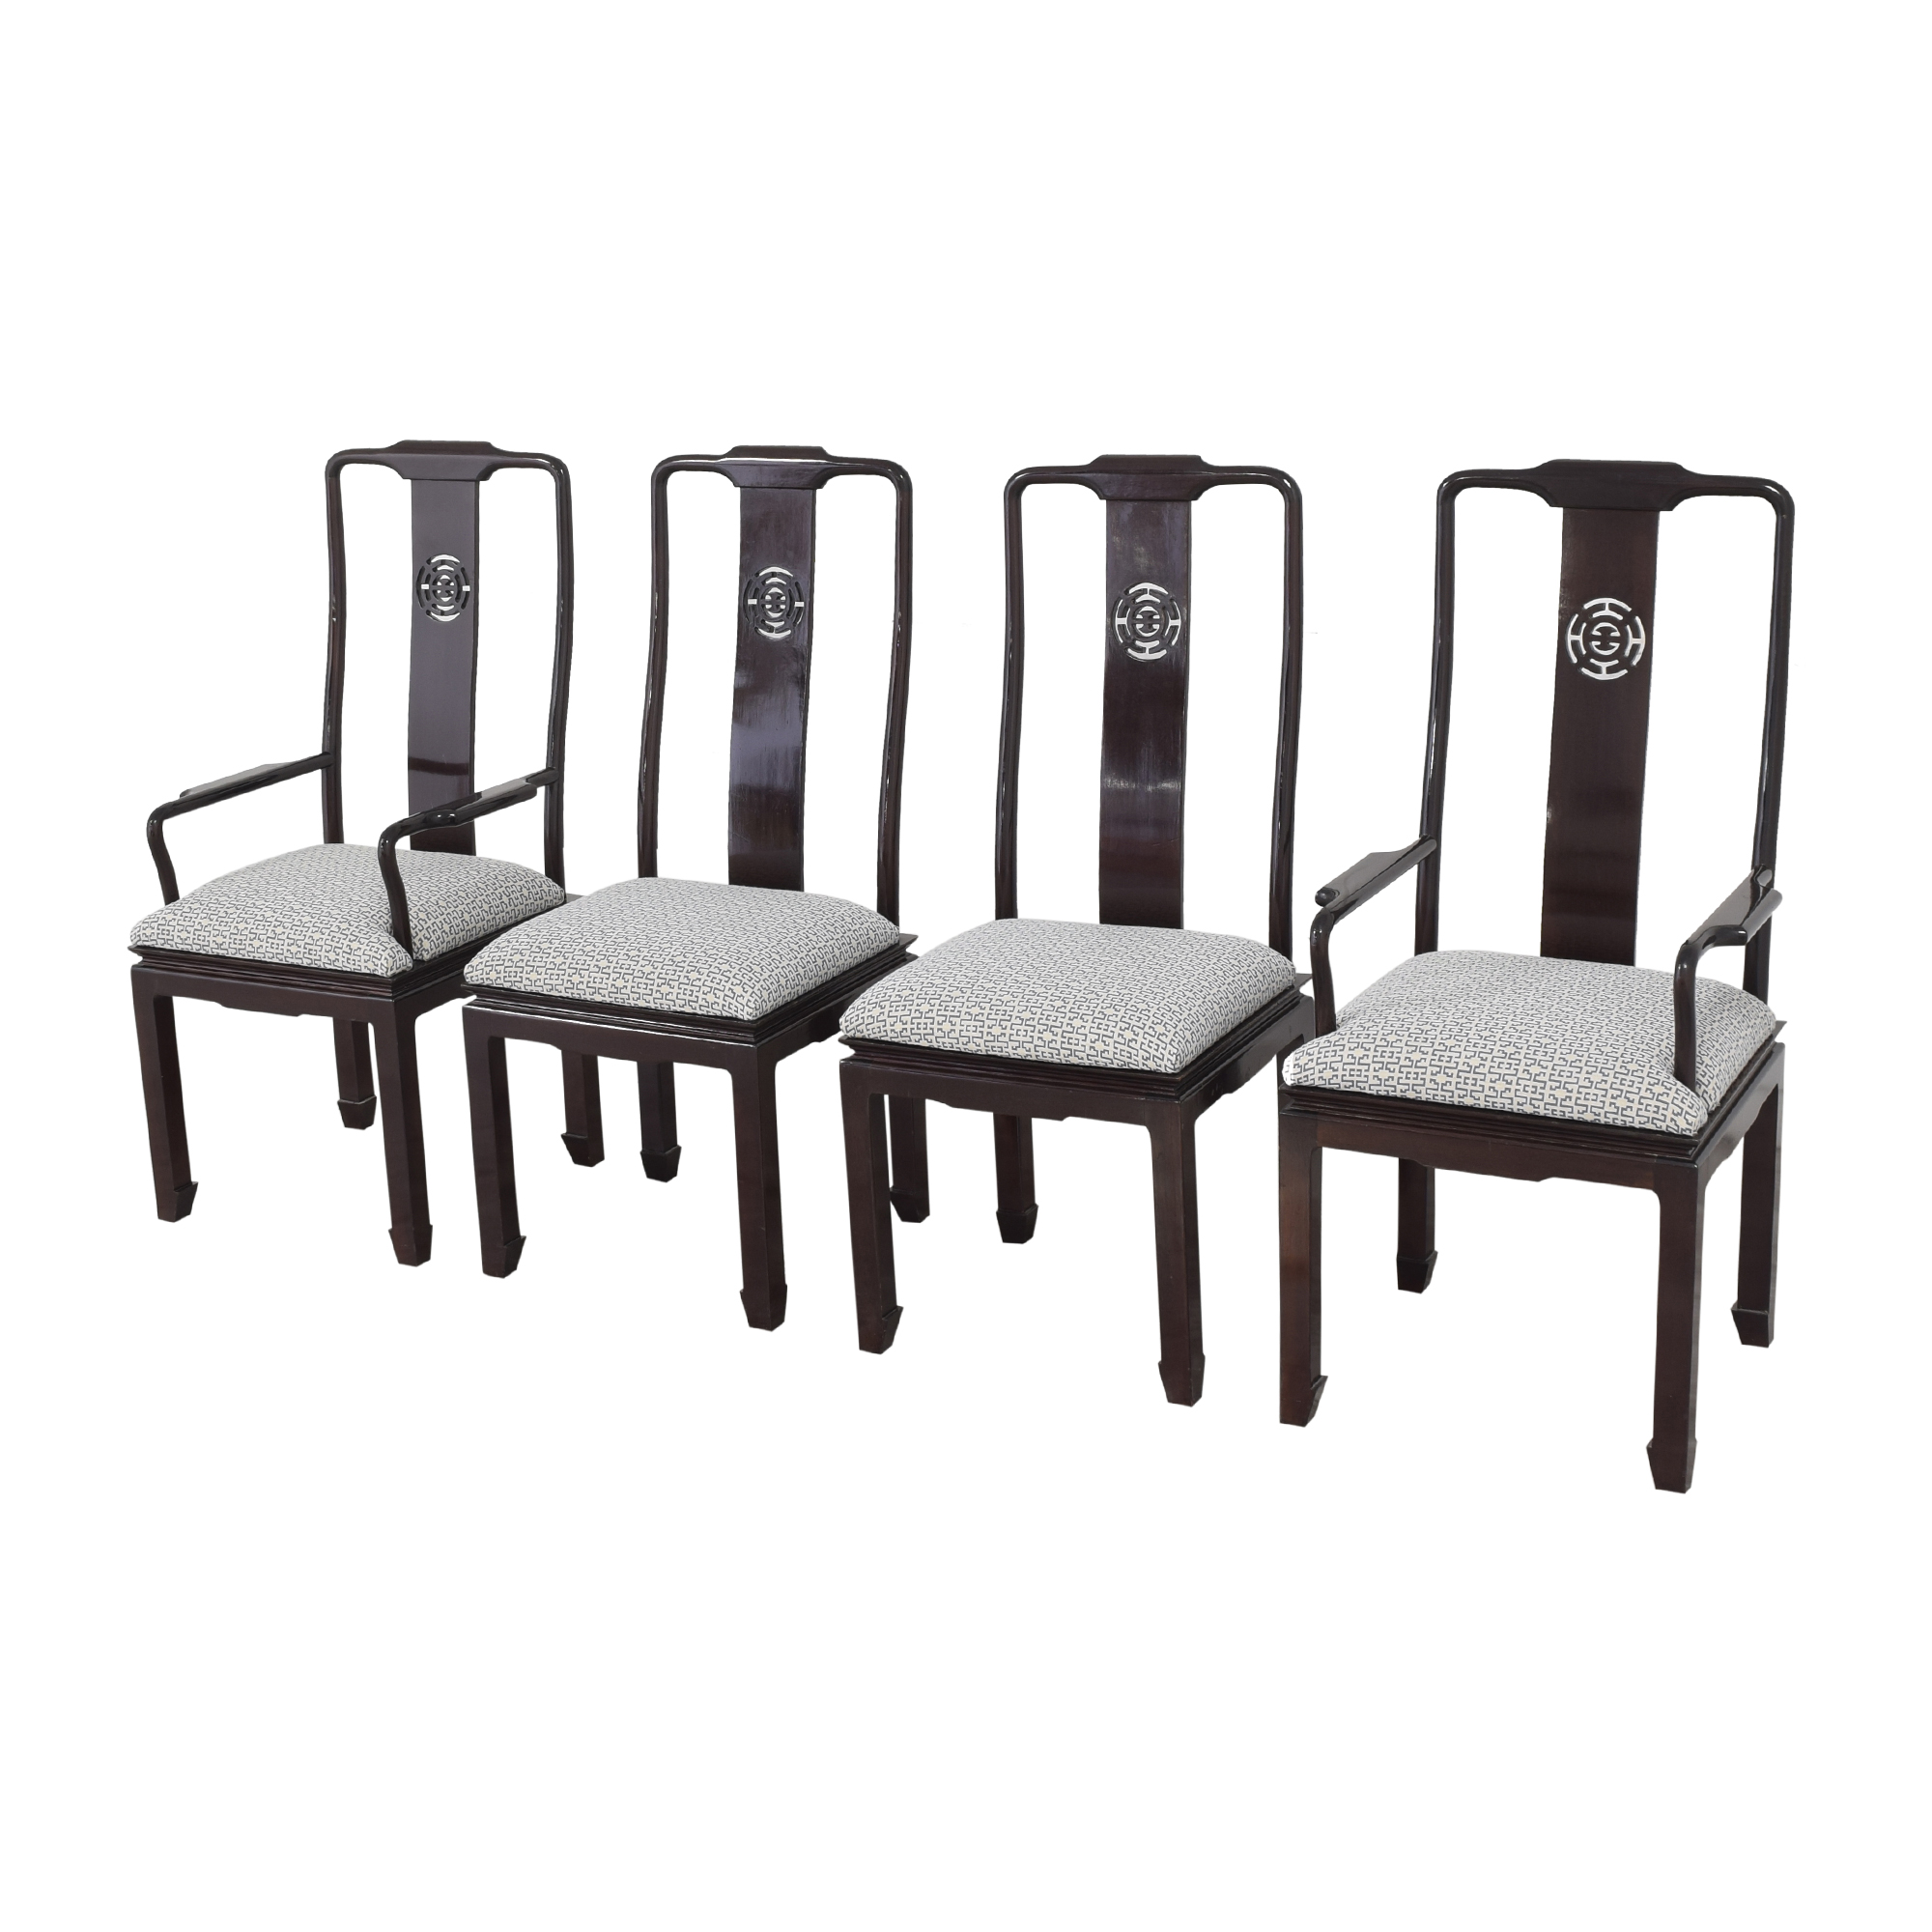 Chinoiserie Dining Chairs second hand